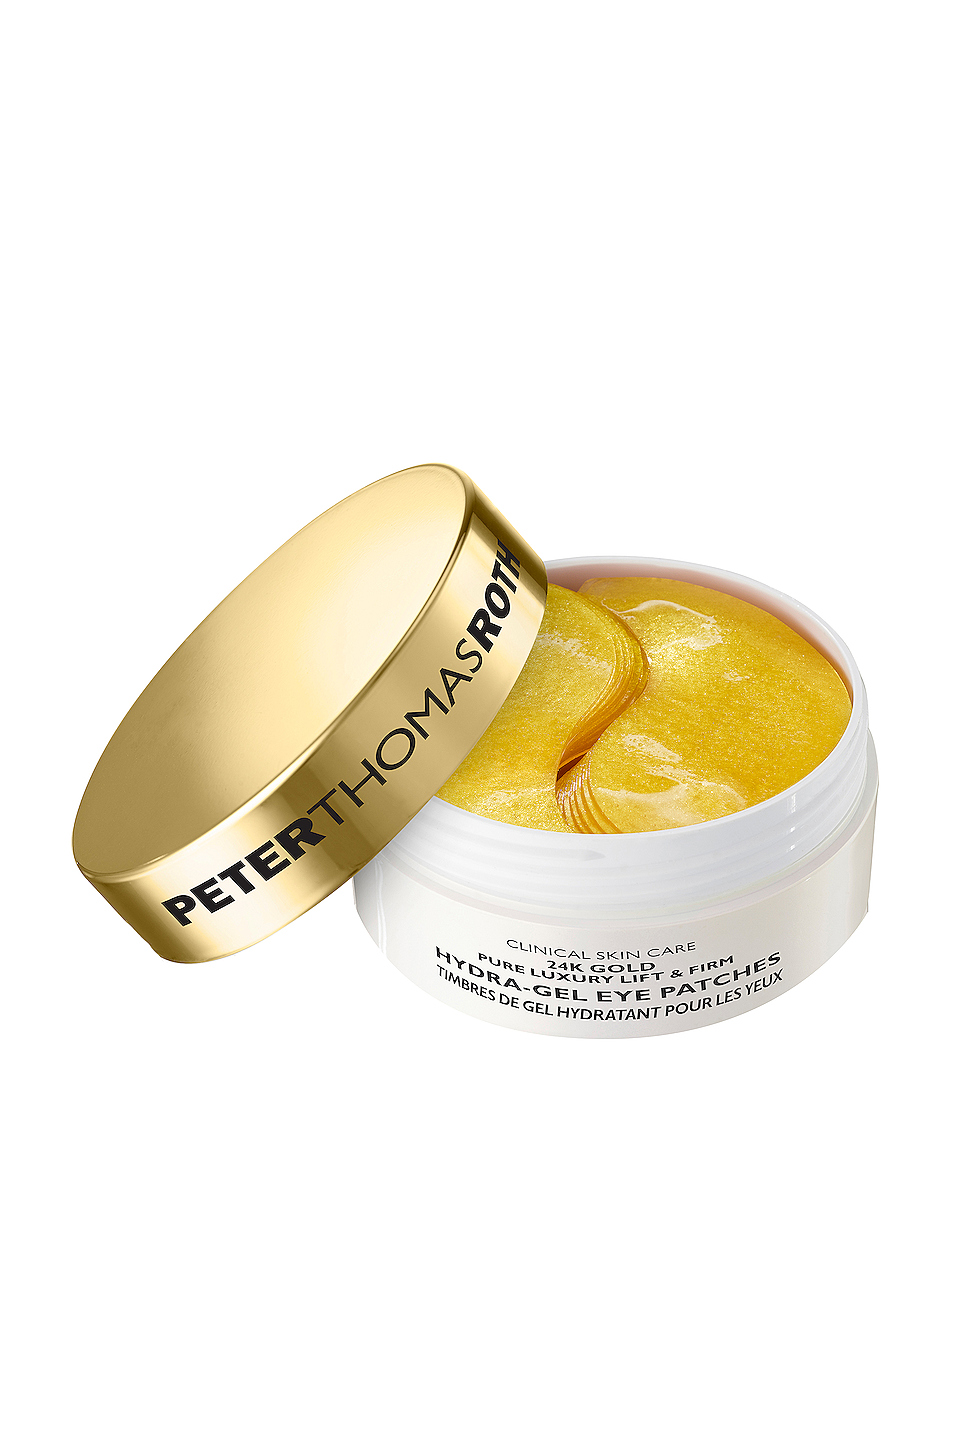 24K Gold Pure Luxury Lift & Firm Hydra Gel Eye Patches